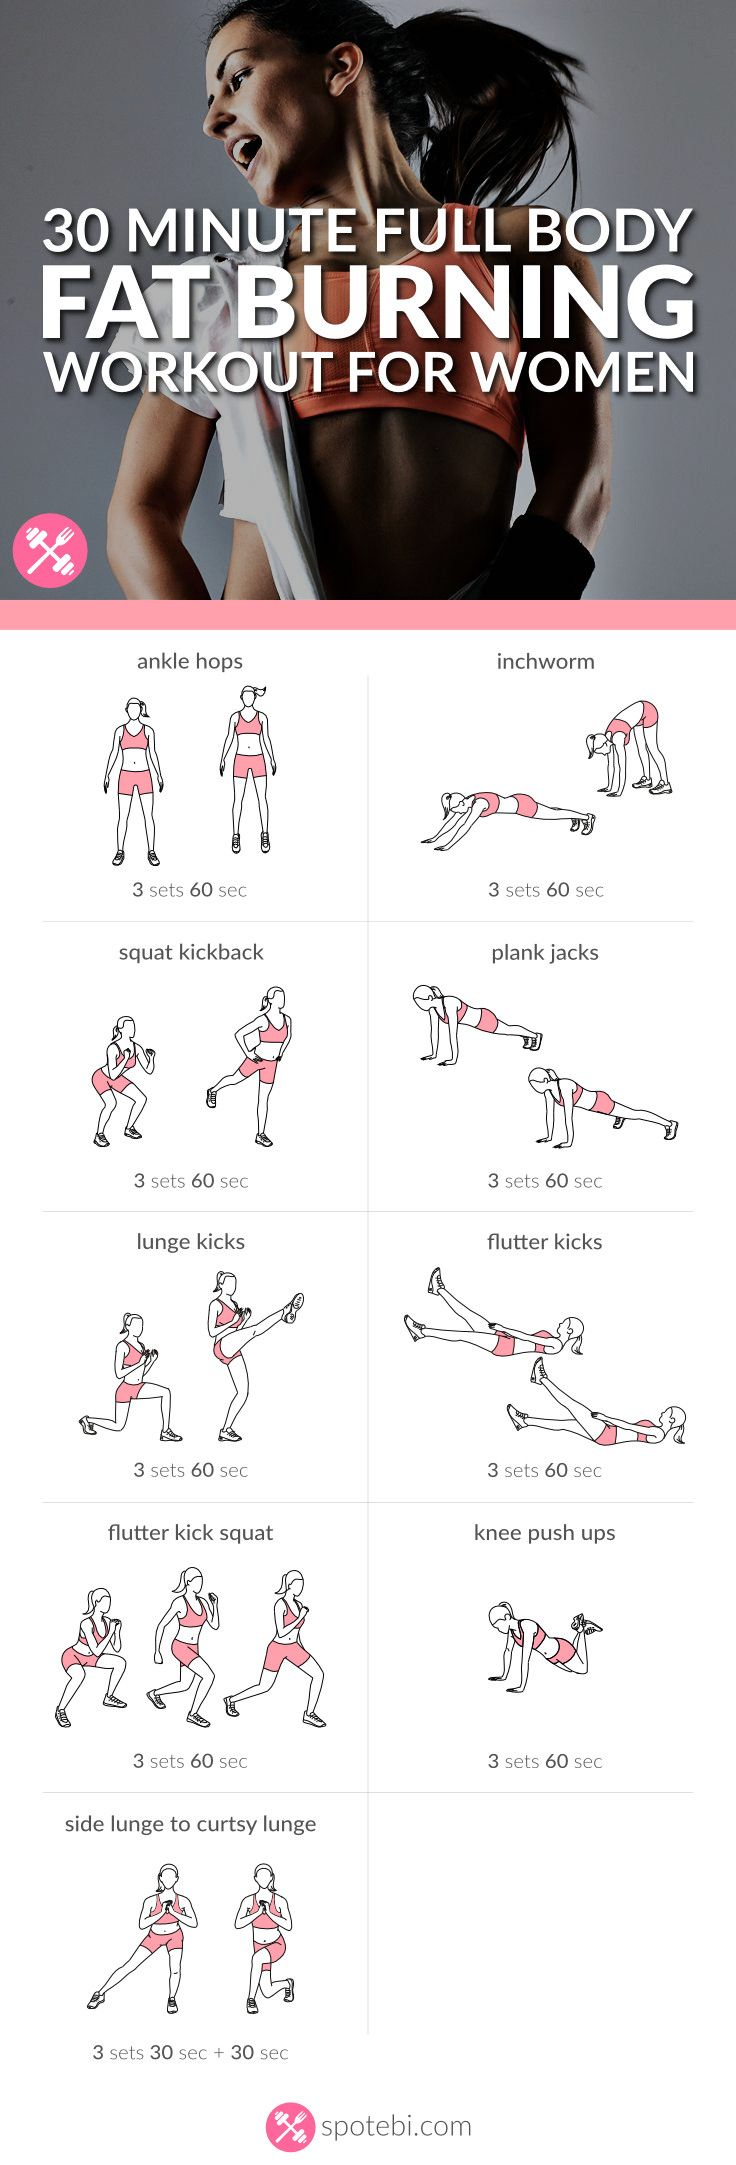 Burn extra calories with this 30 minute full body fat burning workout routine. A…